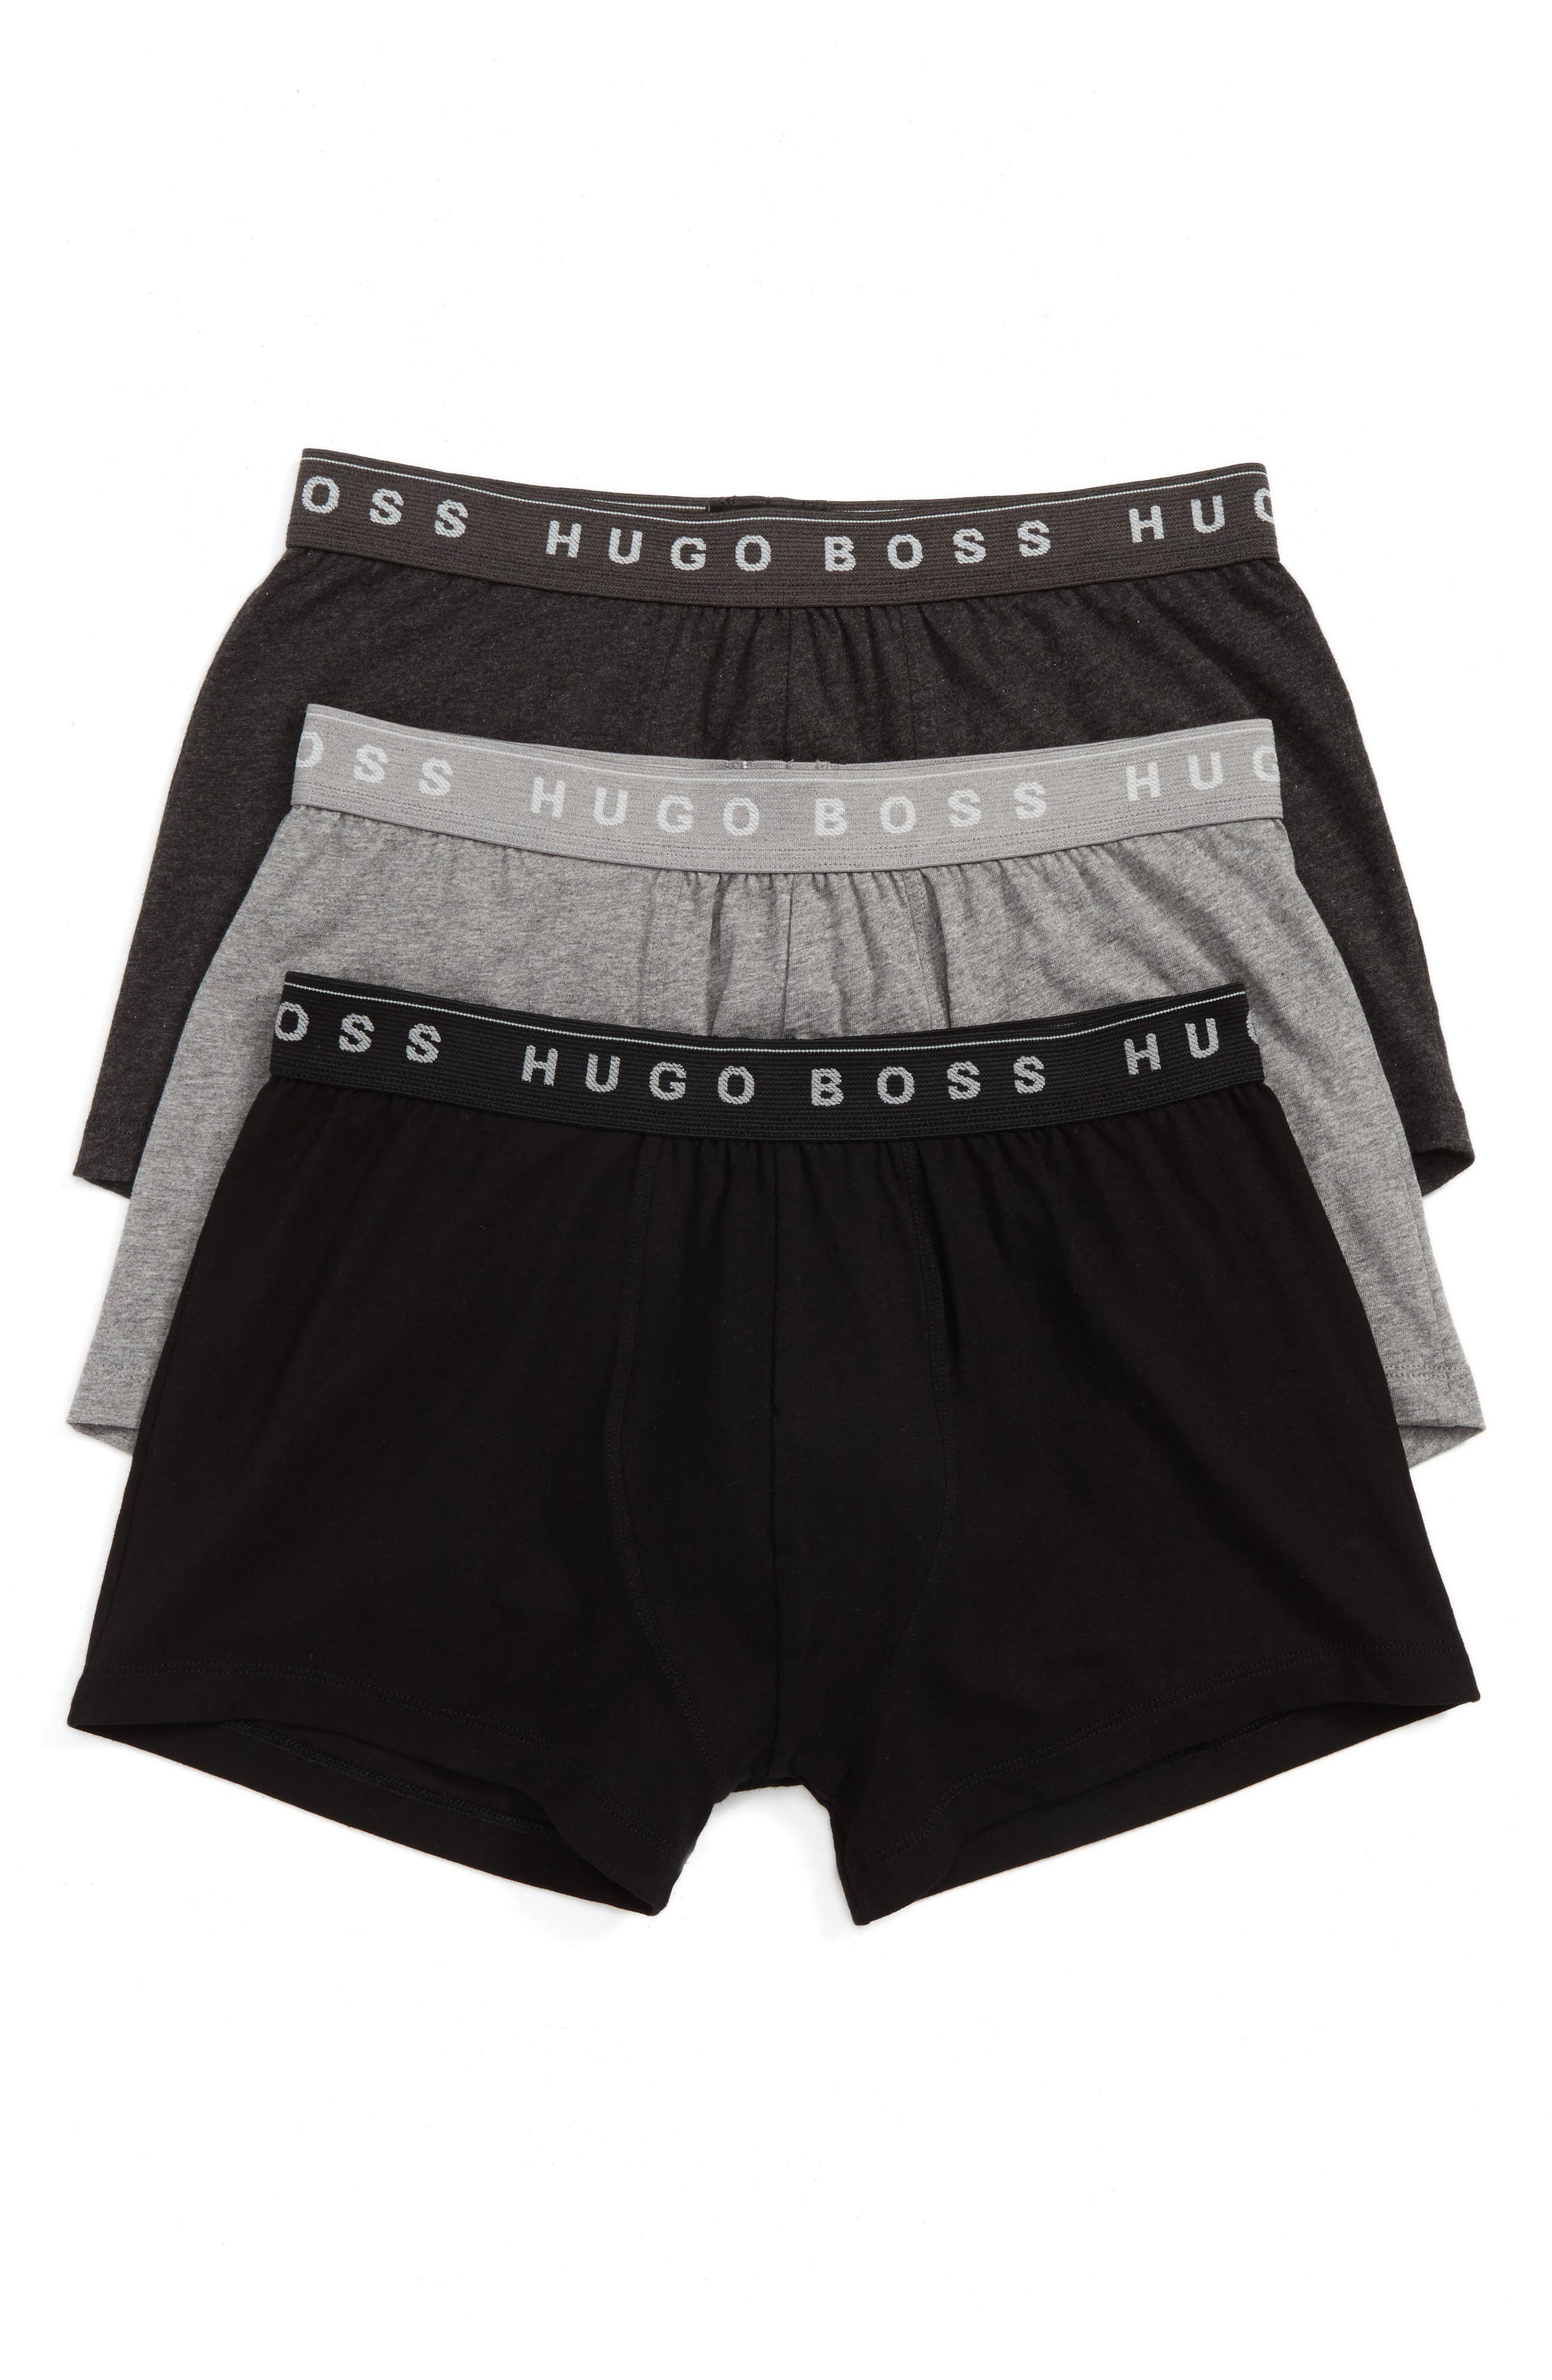 3-Pack Cotton Trunks,                             Main thumbnail 1, color,                             Open Grey